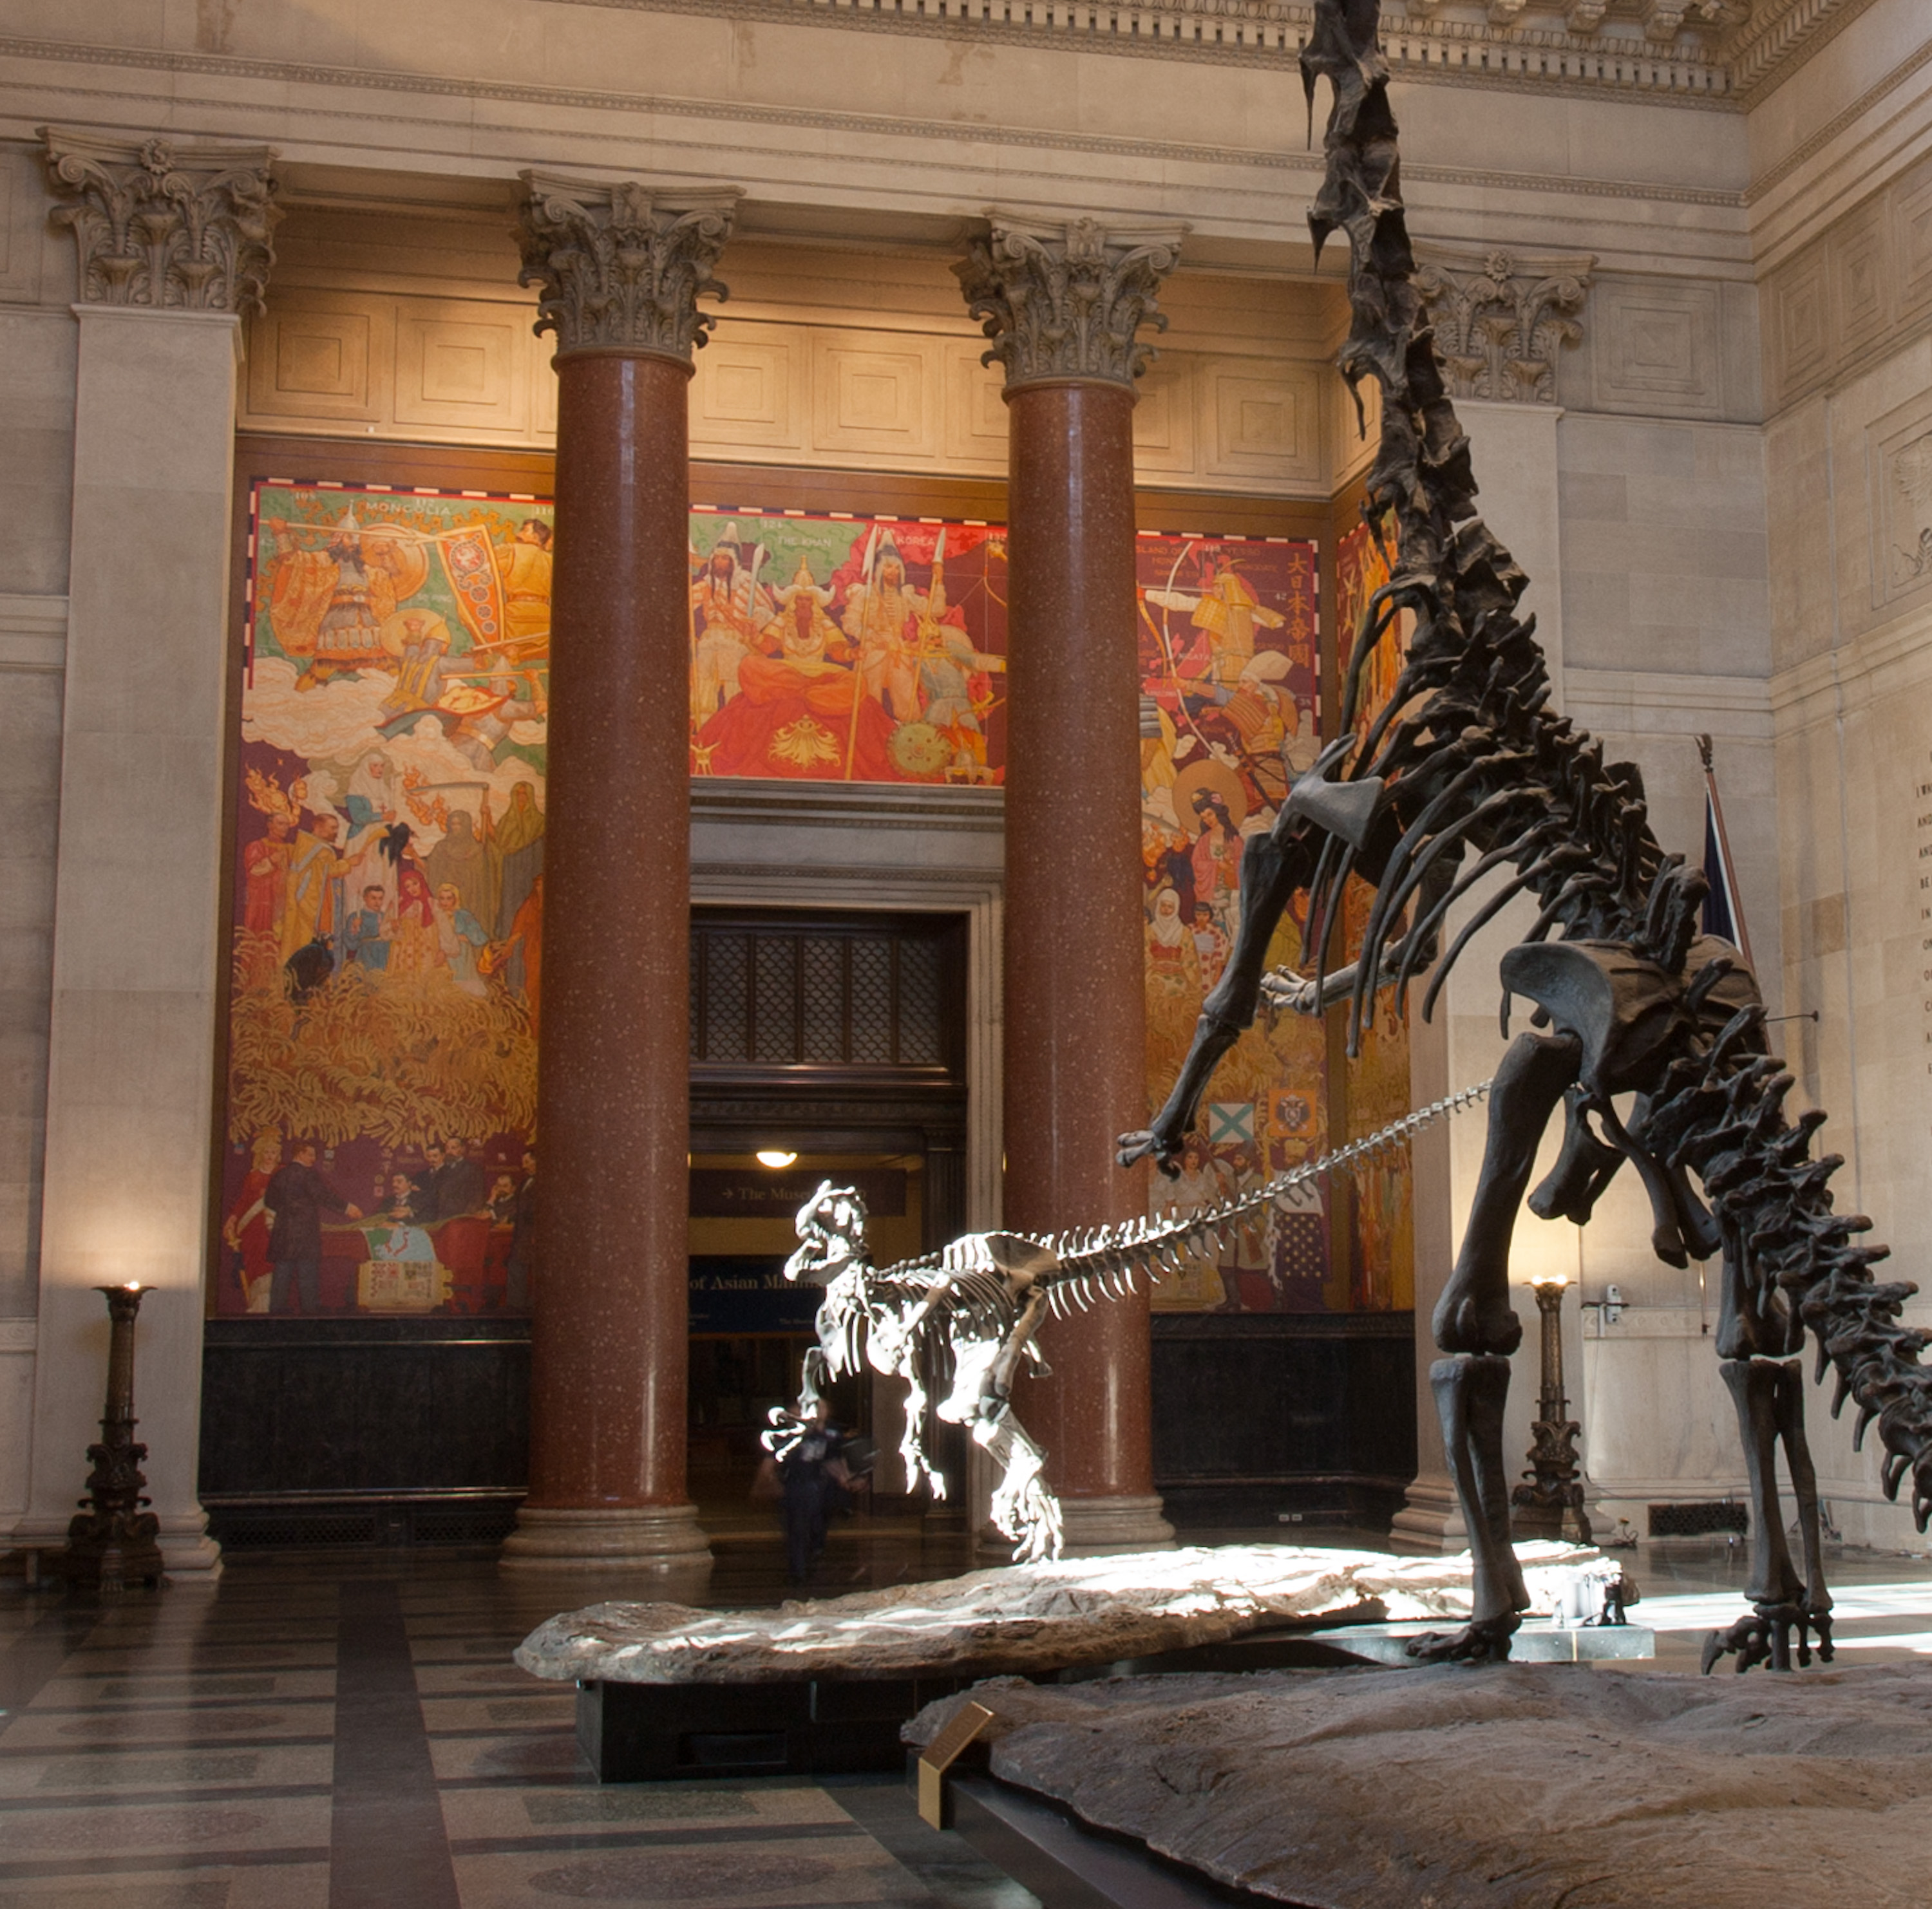 Check out more apps from the American Museum of Natural History